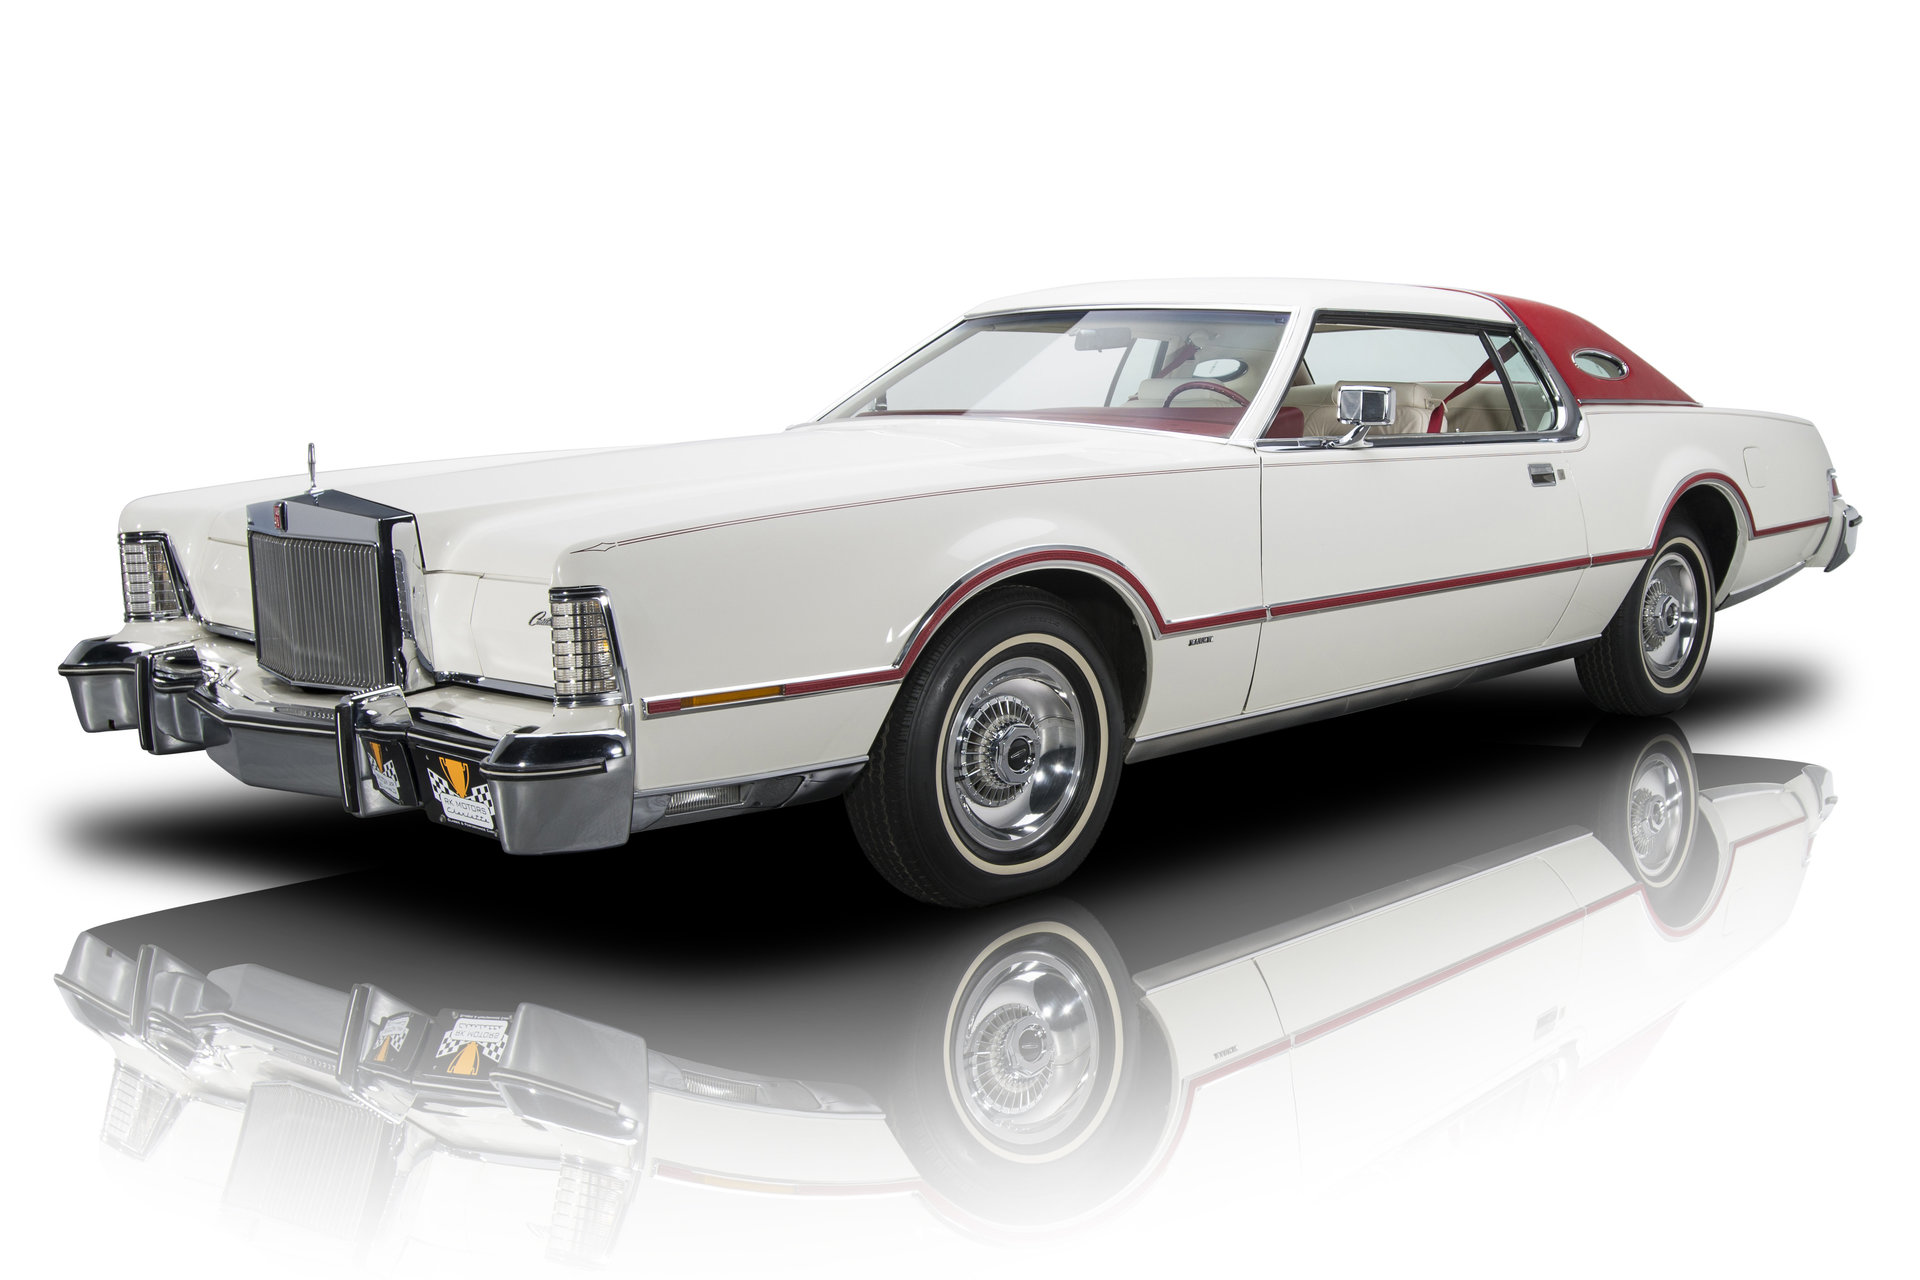 136143 1976 Lincoln Mark IV   RK Motors Classic and Performance Cars ...